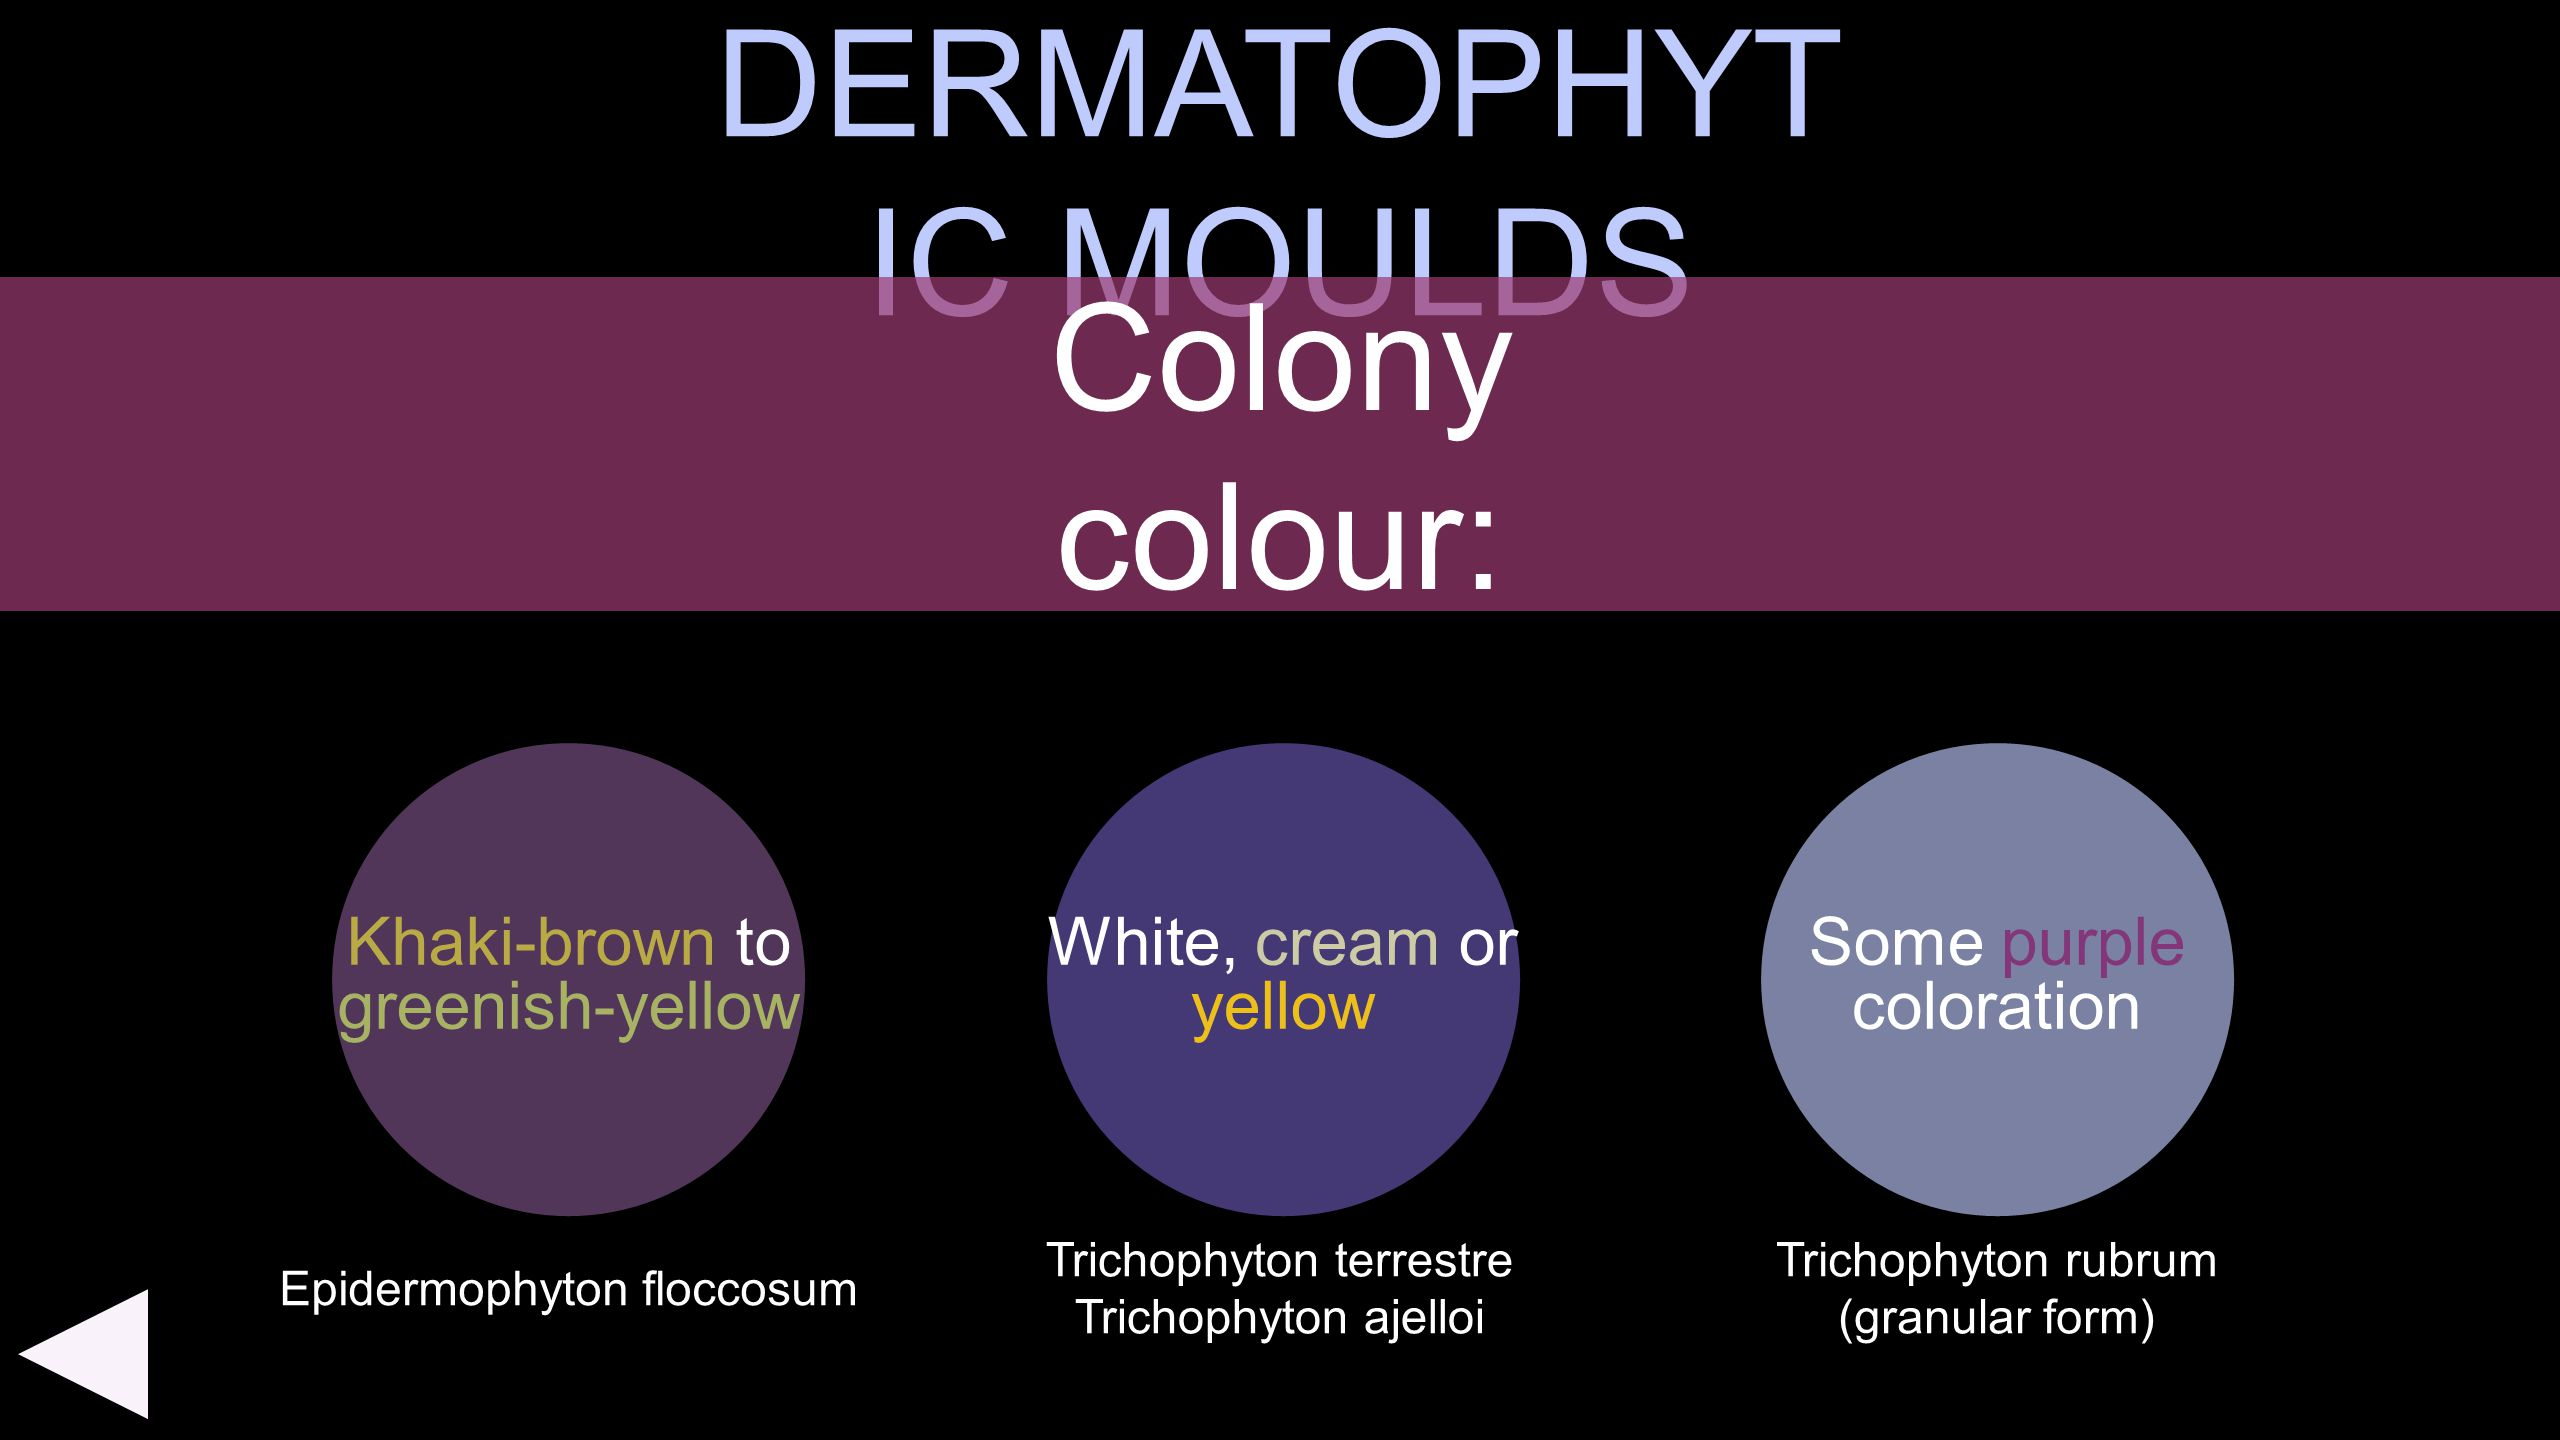 DERMATOPHYTIC MOULDS Colony colour: Khaki-brown to greenish-yellow